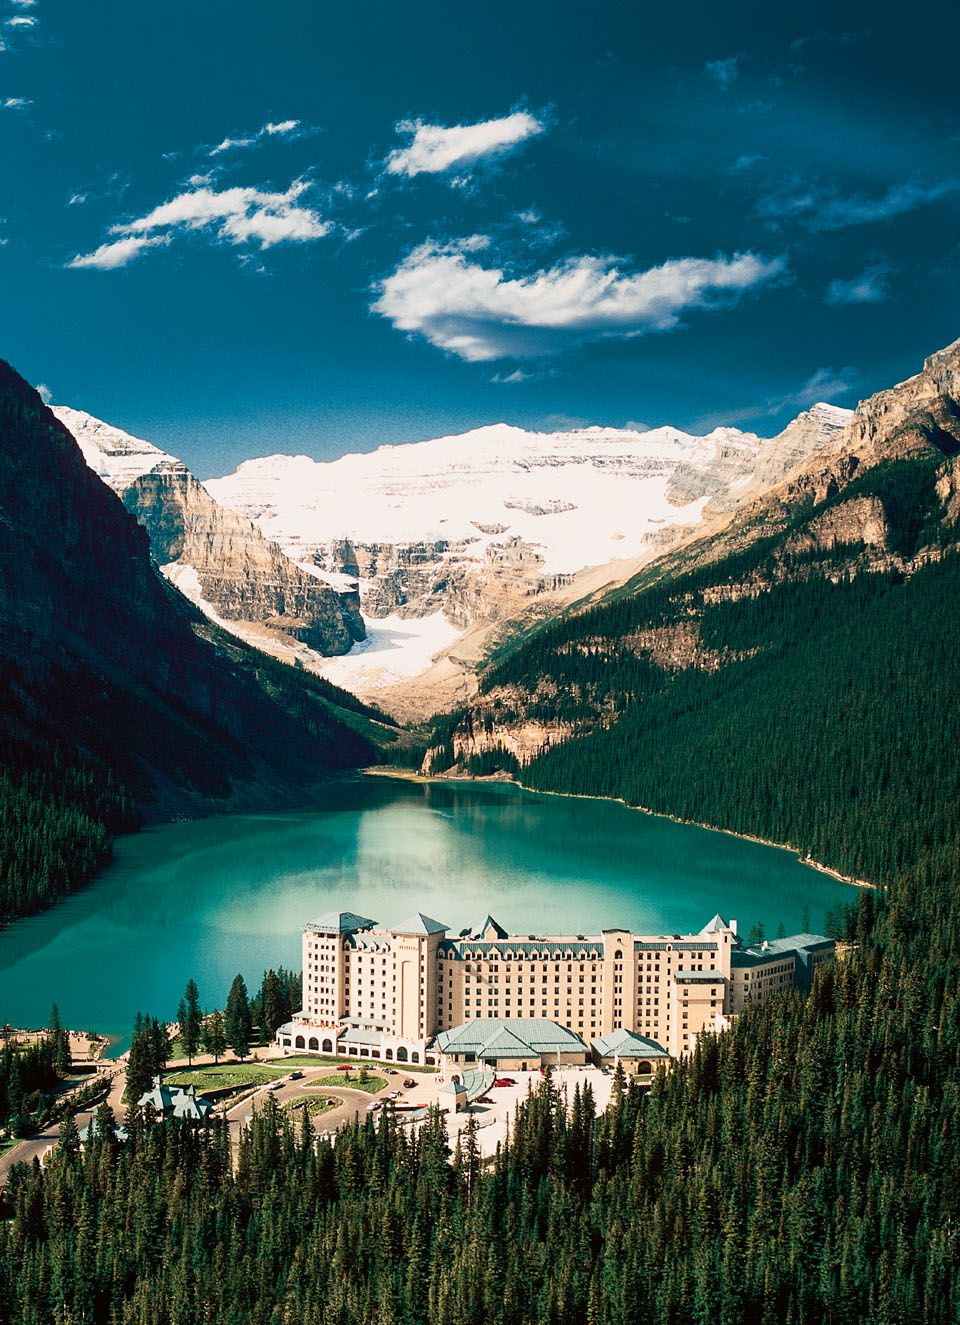 Fairmont Chateau Lake Louise. Located in the heart of Banff National Park and within a UNESCO World Heritage Site. Alberta Canada